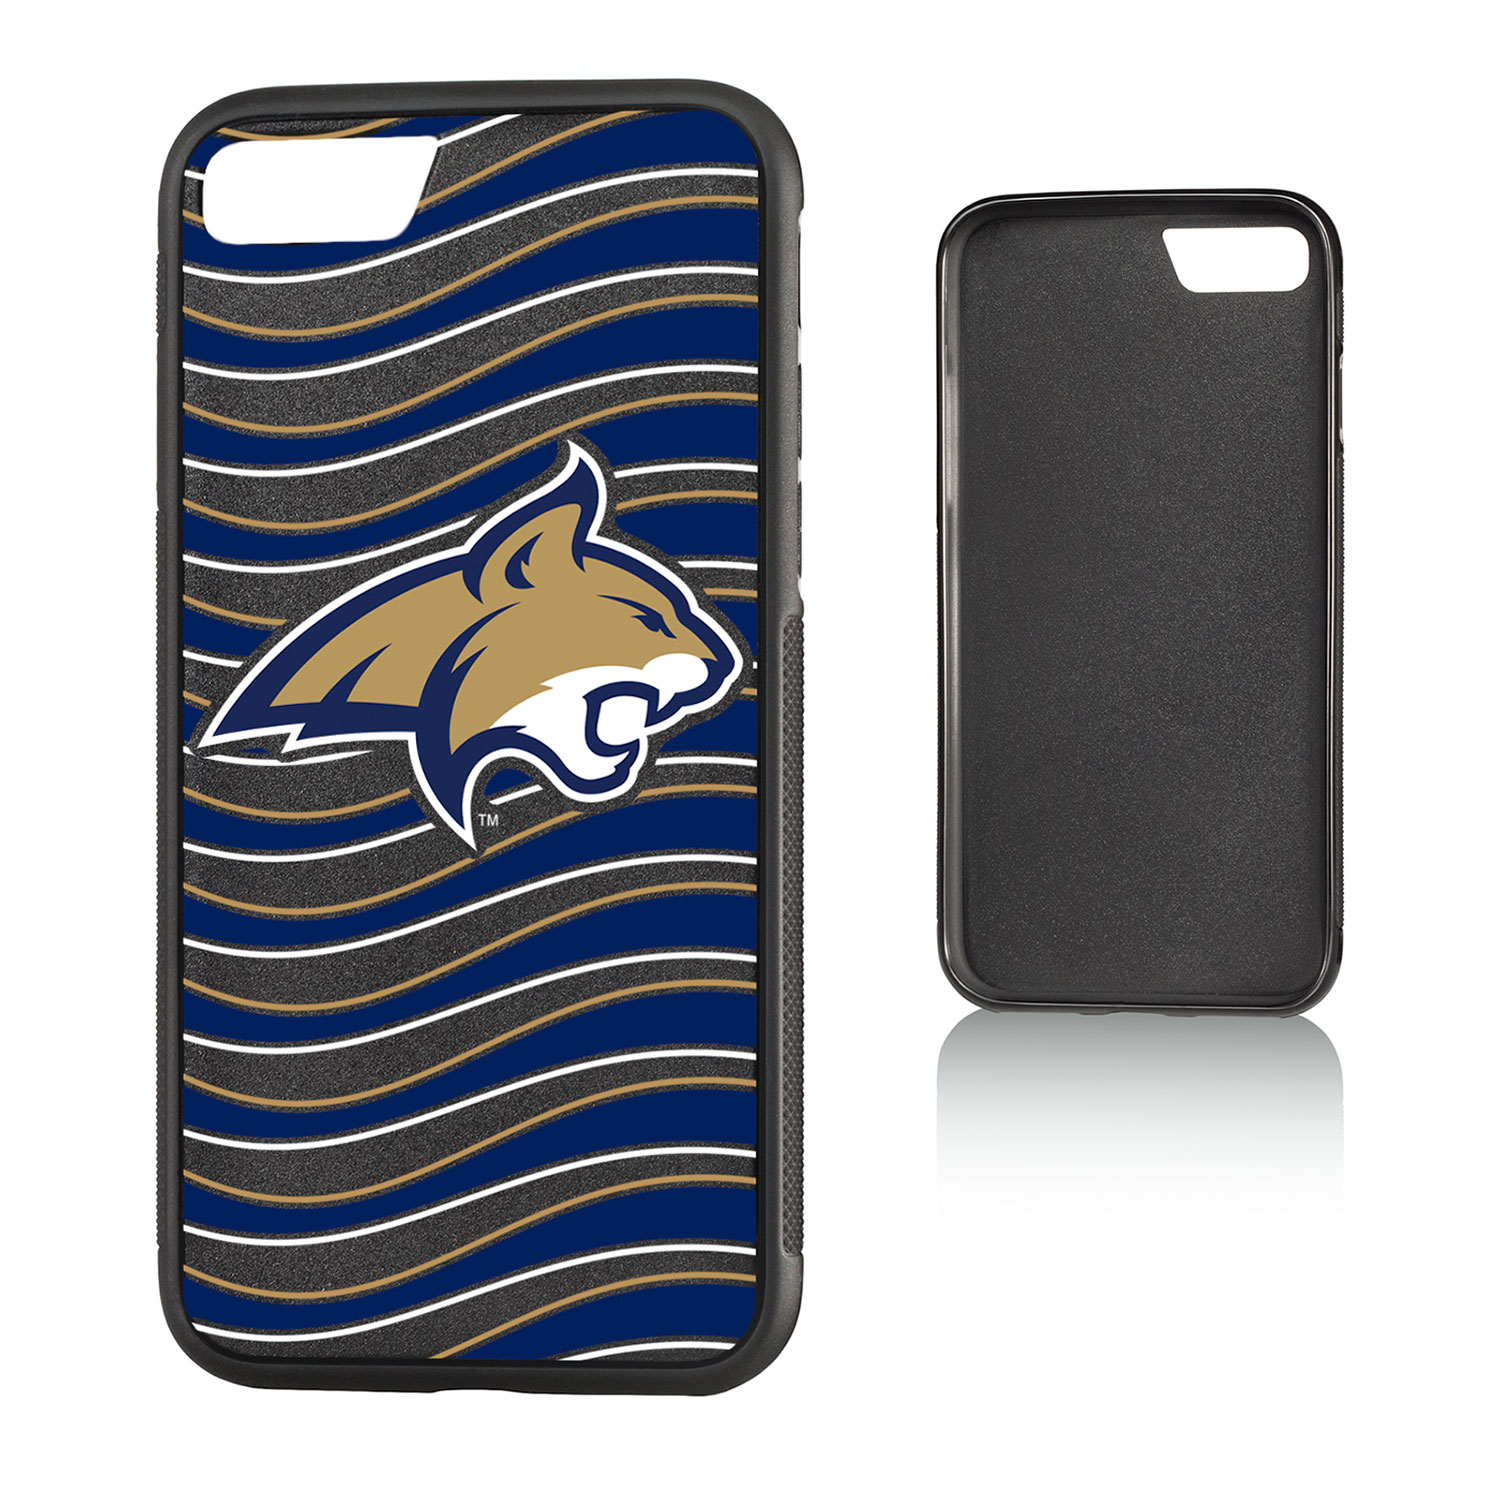 MSU Montana State Bobcats Wave Bump Case for iPhone 8 / 7